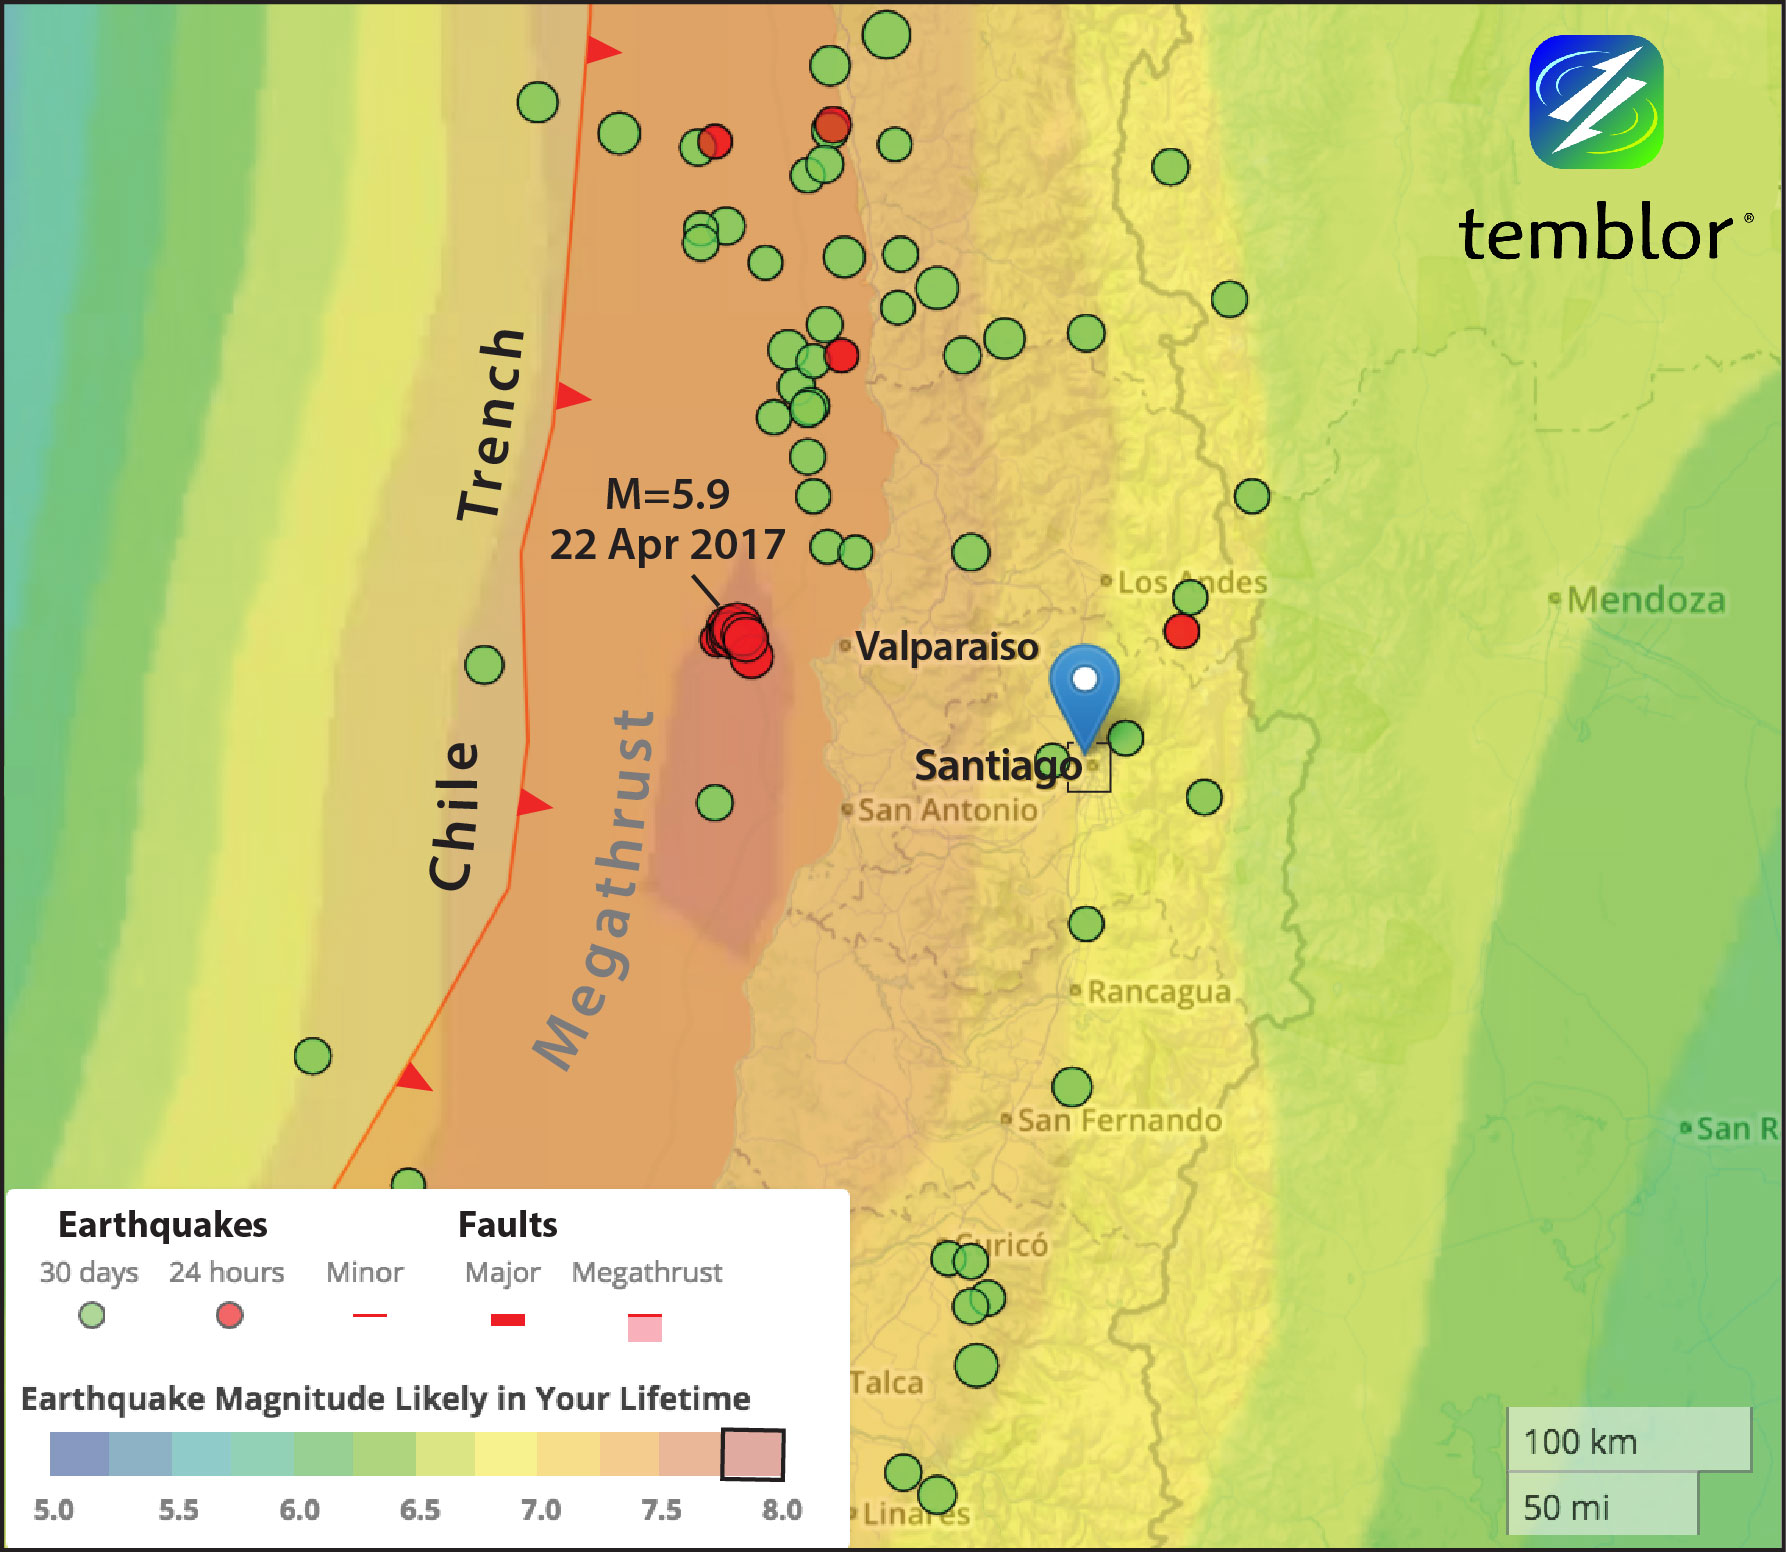 The seismic swarm is occurring in the site along the Chile Trench with the largest expected earthquake magnitude in a typical lifetime: M=8.0. This is the quake magnitude that has a 1% chance of occurring per year, whereas in Santiago (blue pin), it is M=7.0, which is about 30 times smaller.